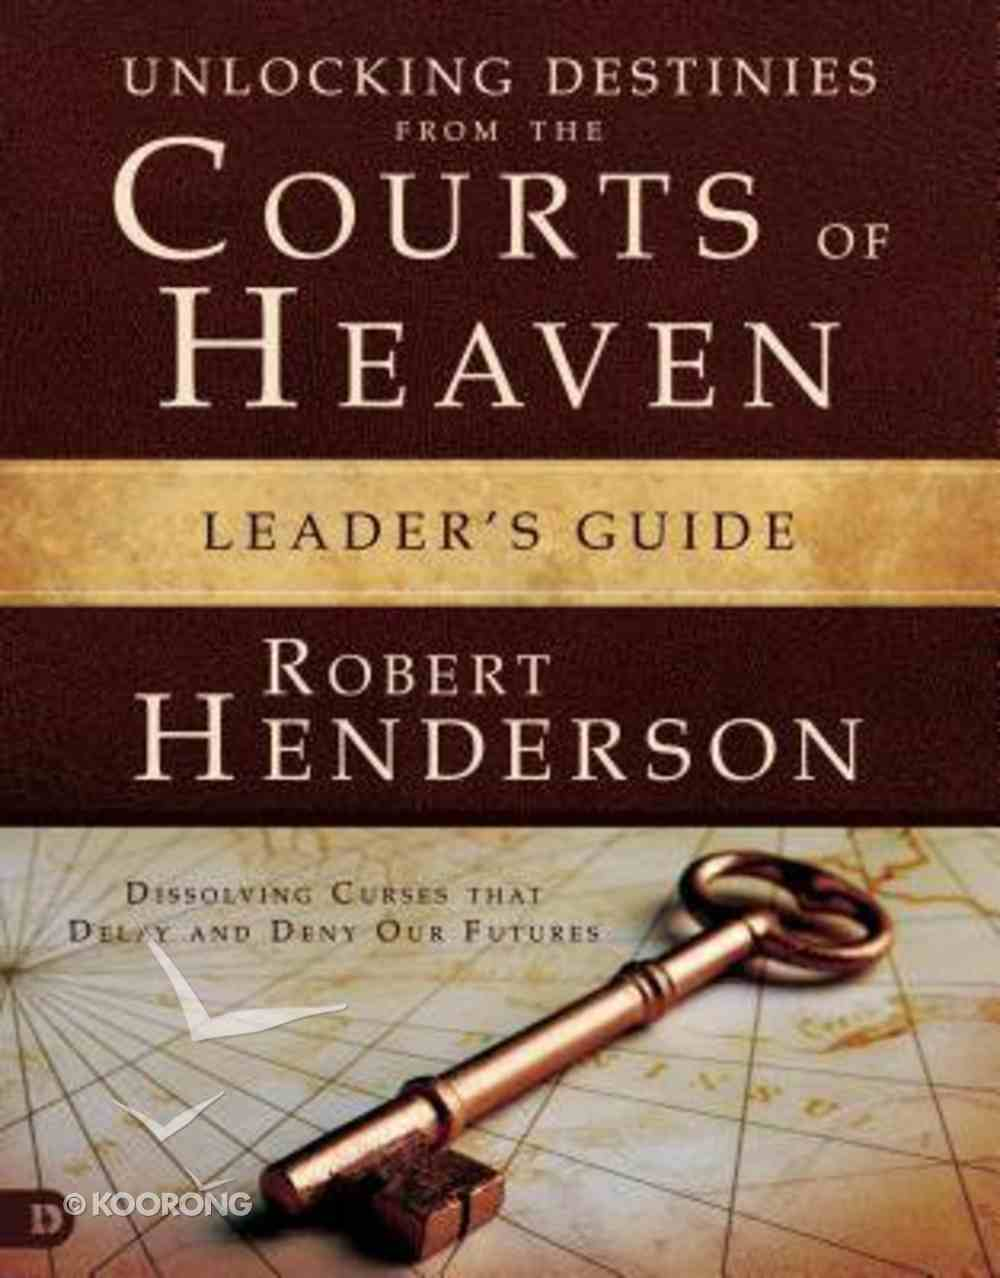 Unlocking Destinies From the Courts of Heaven (Leader's Guide) (#01 in Official Courts Of Heaven Series) Paperback